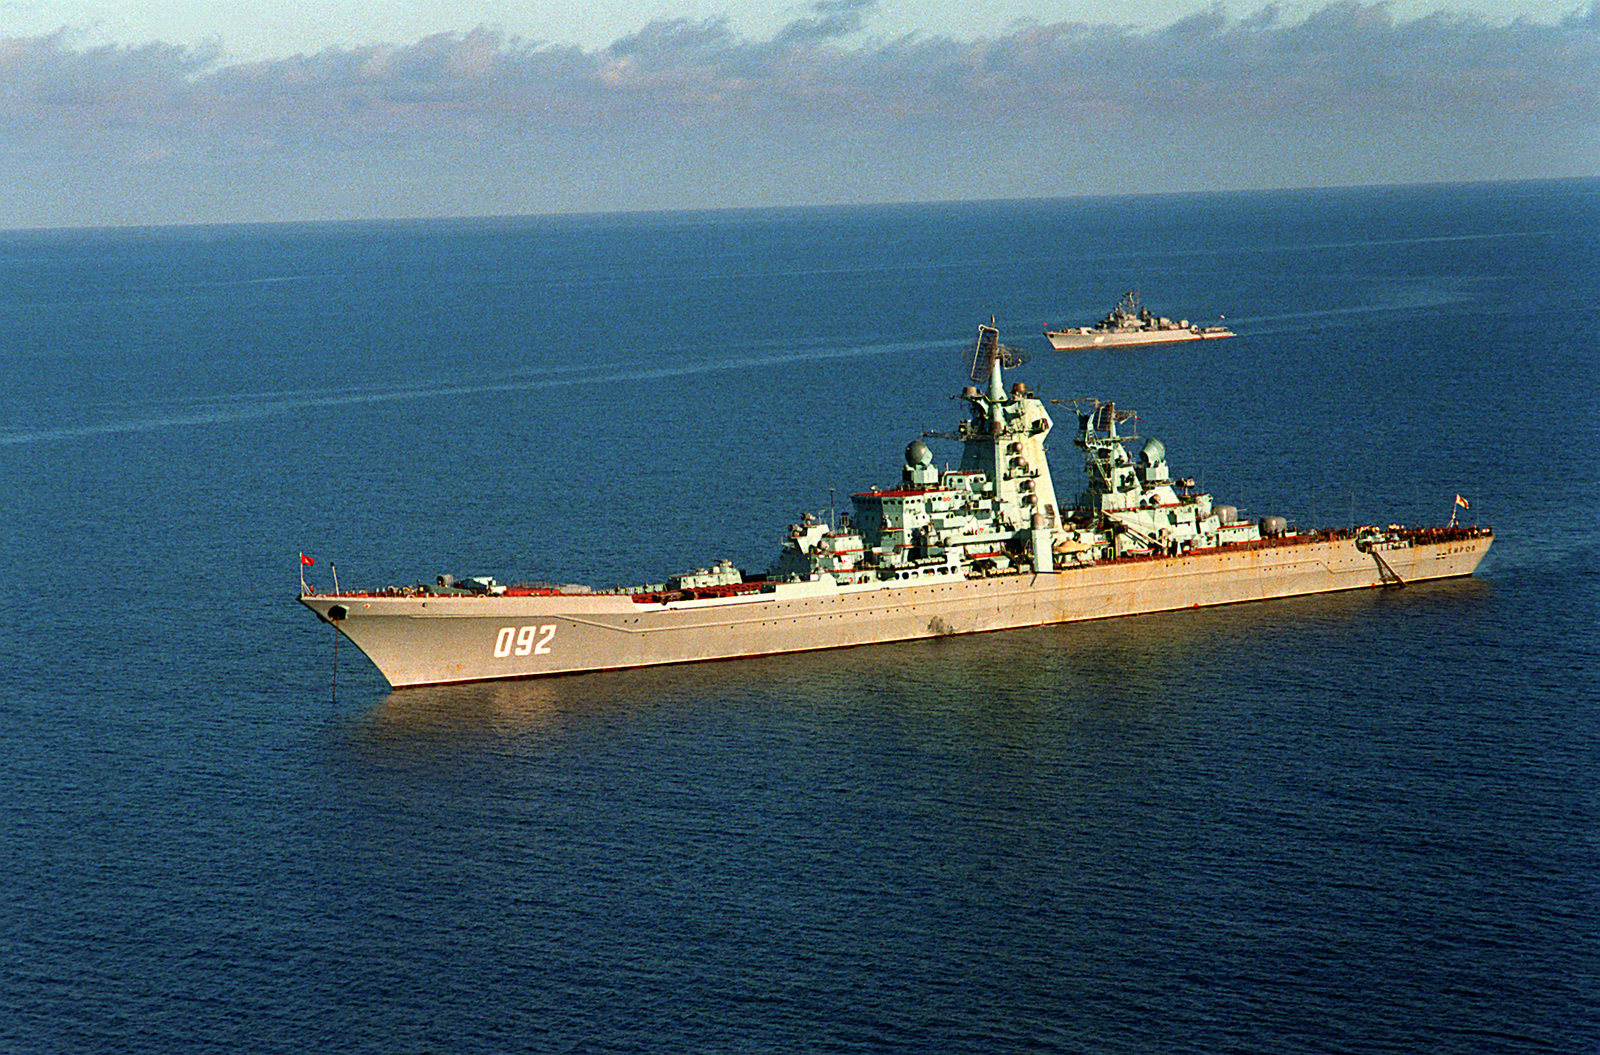 A port view of the Soviet nuclear-powered guided missile cruiser KIROV at anchor. In the background is a Soviet Krivak I-class guided missile frigate